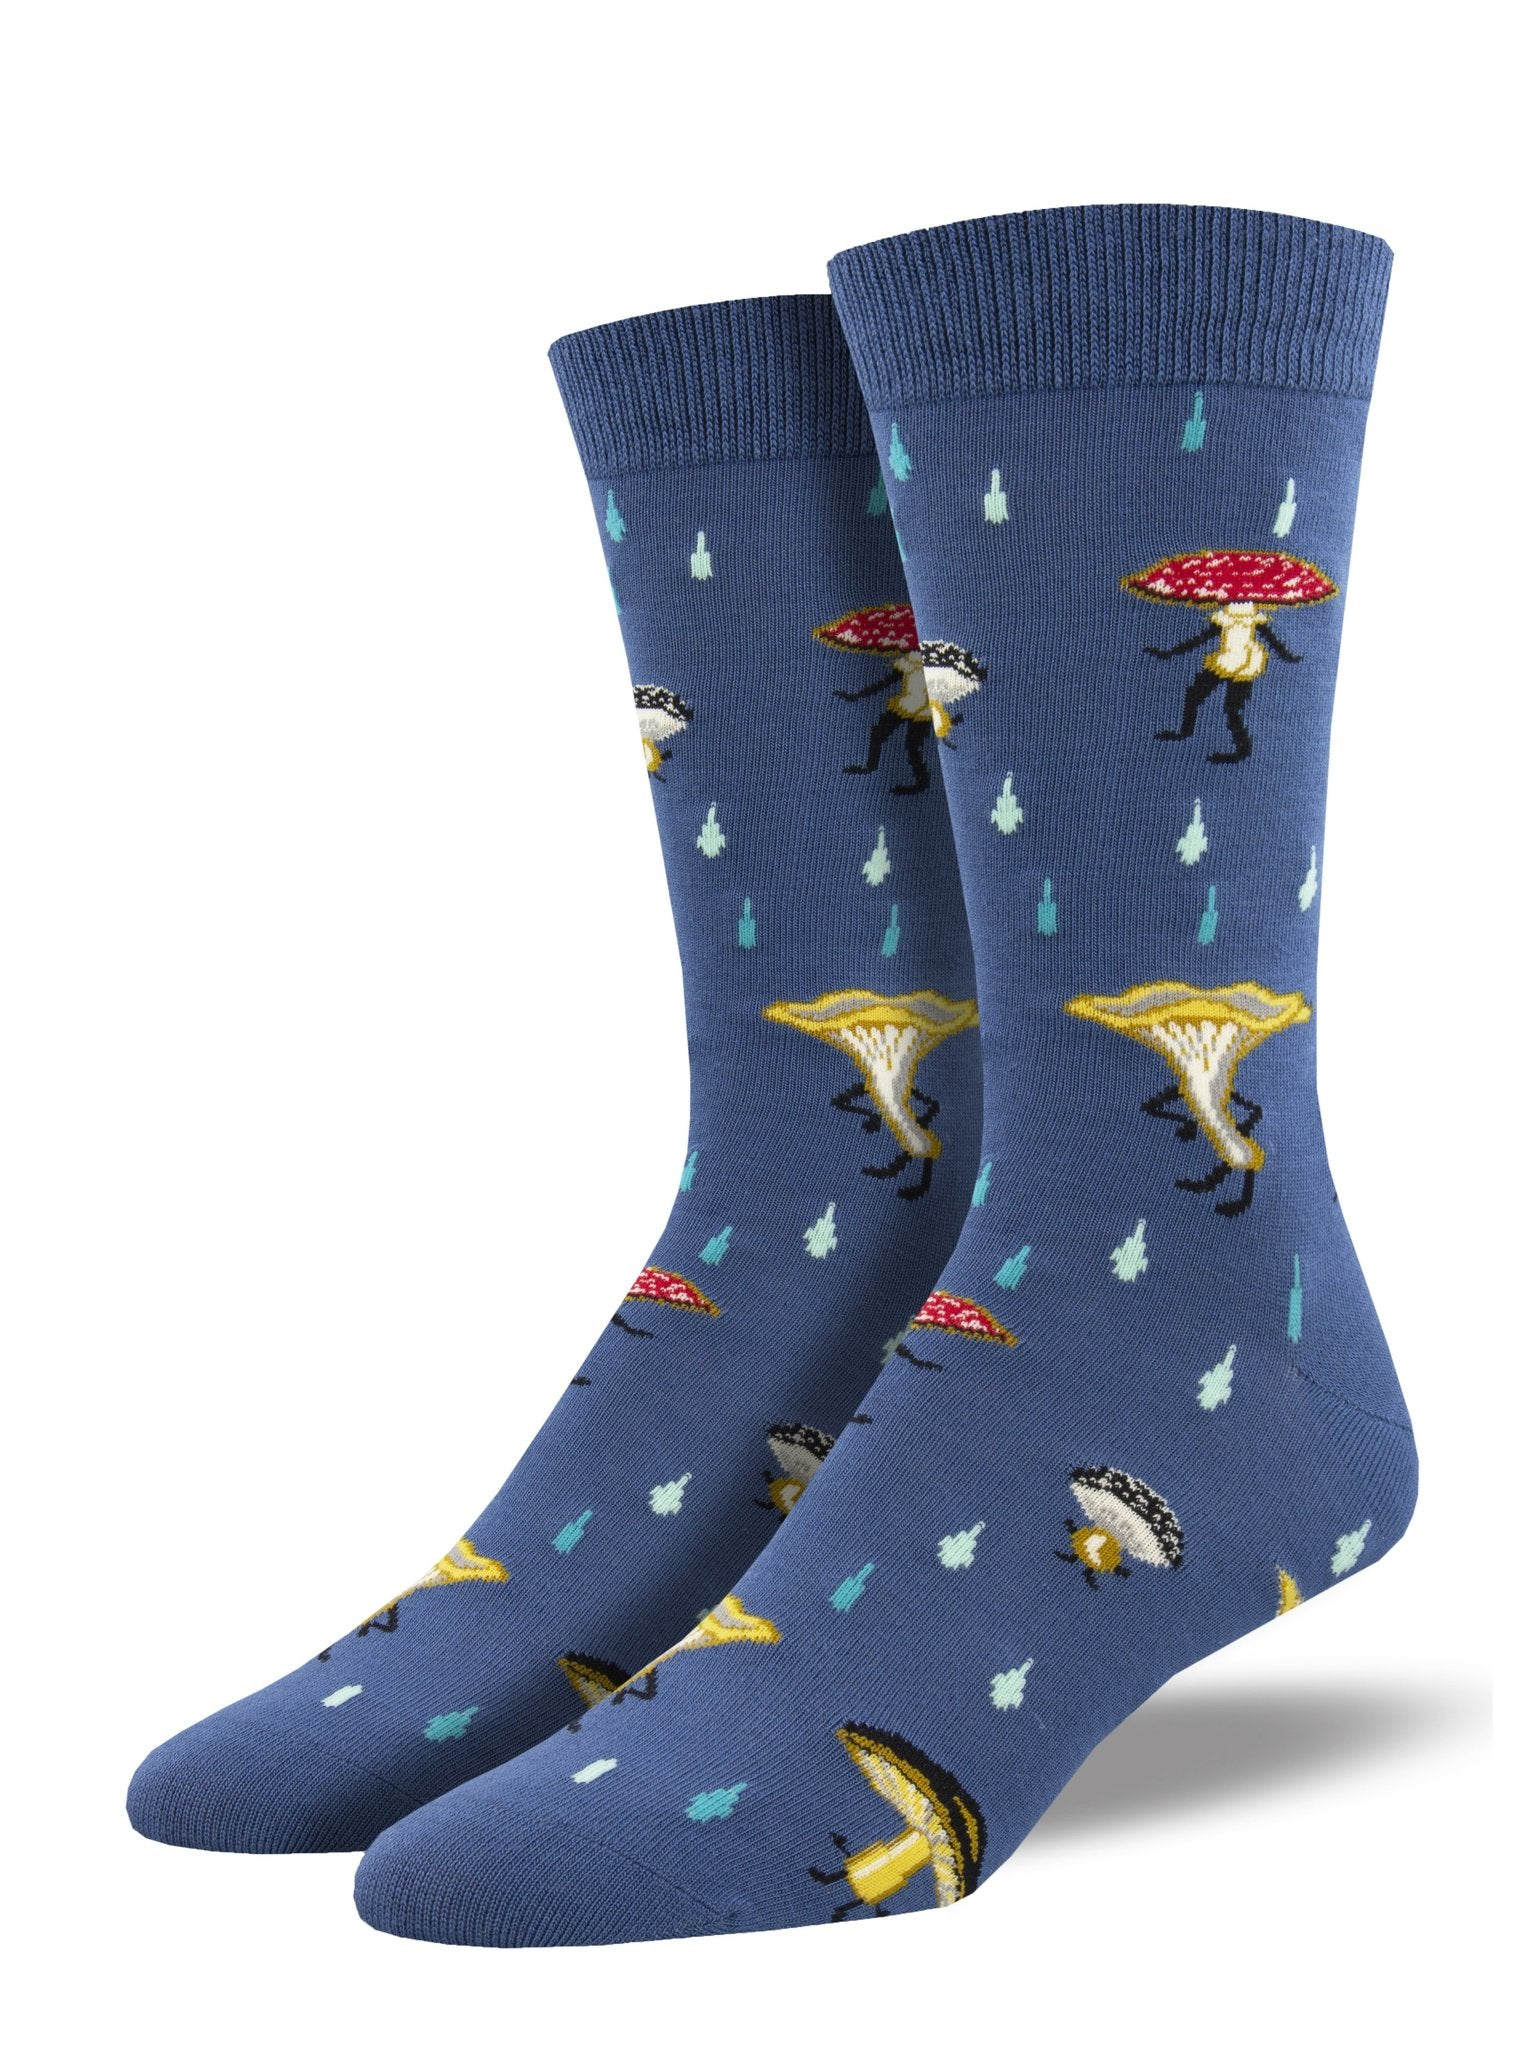 Fungi Fun Guys Men's Bamboo Crew Socks